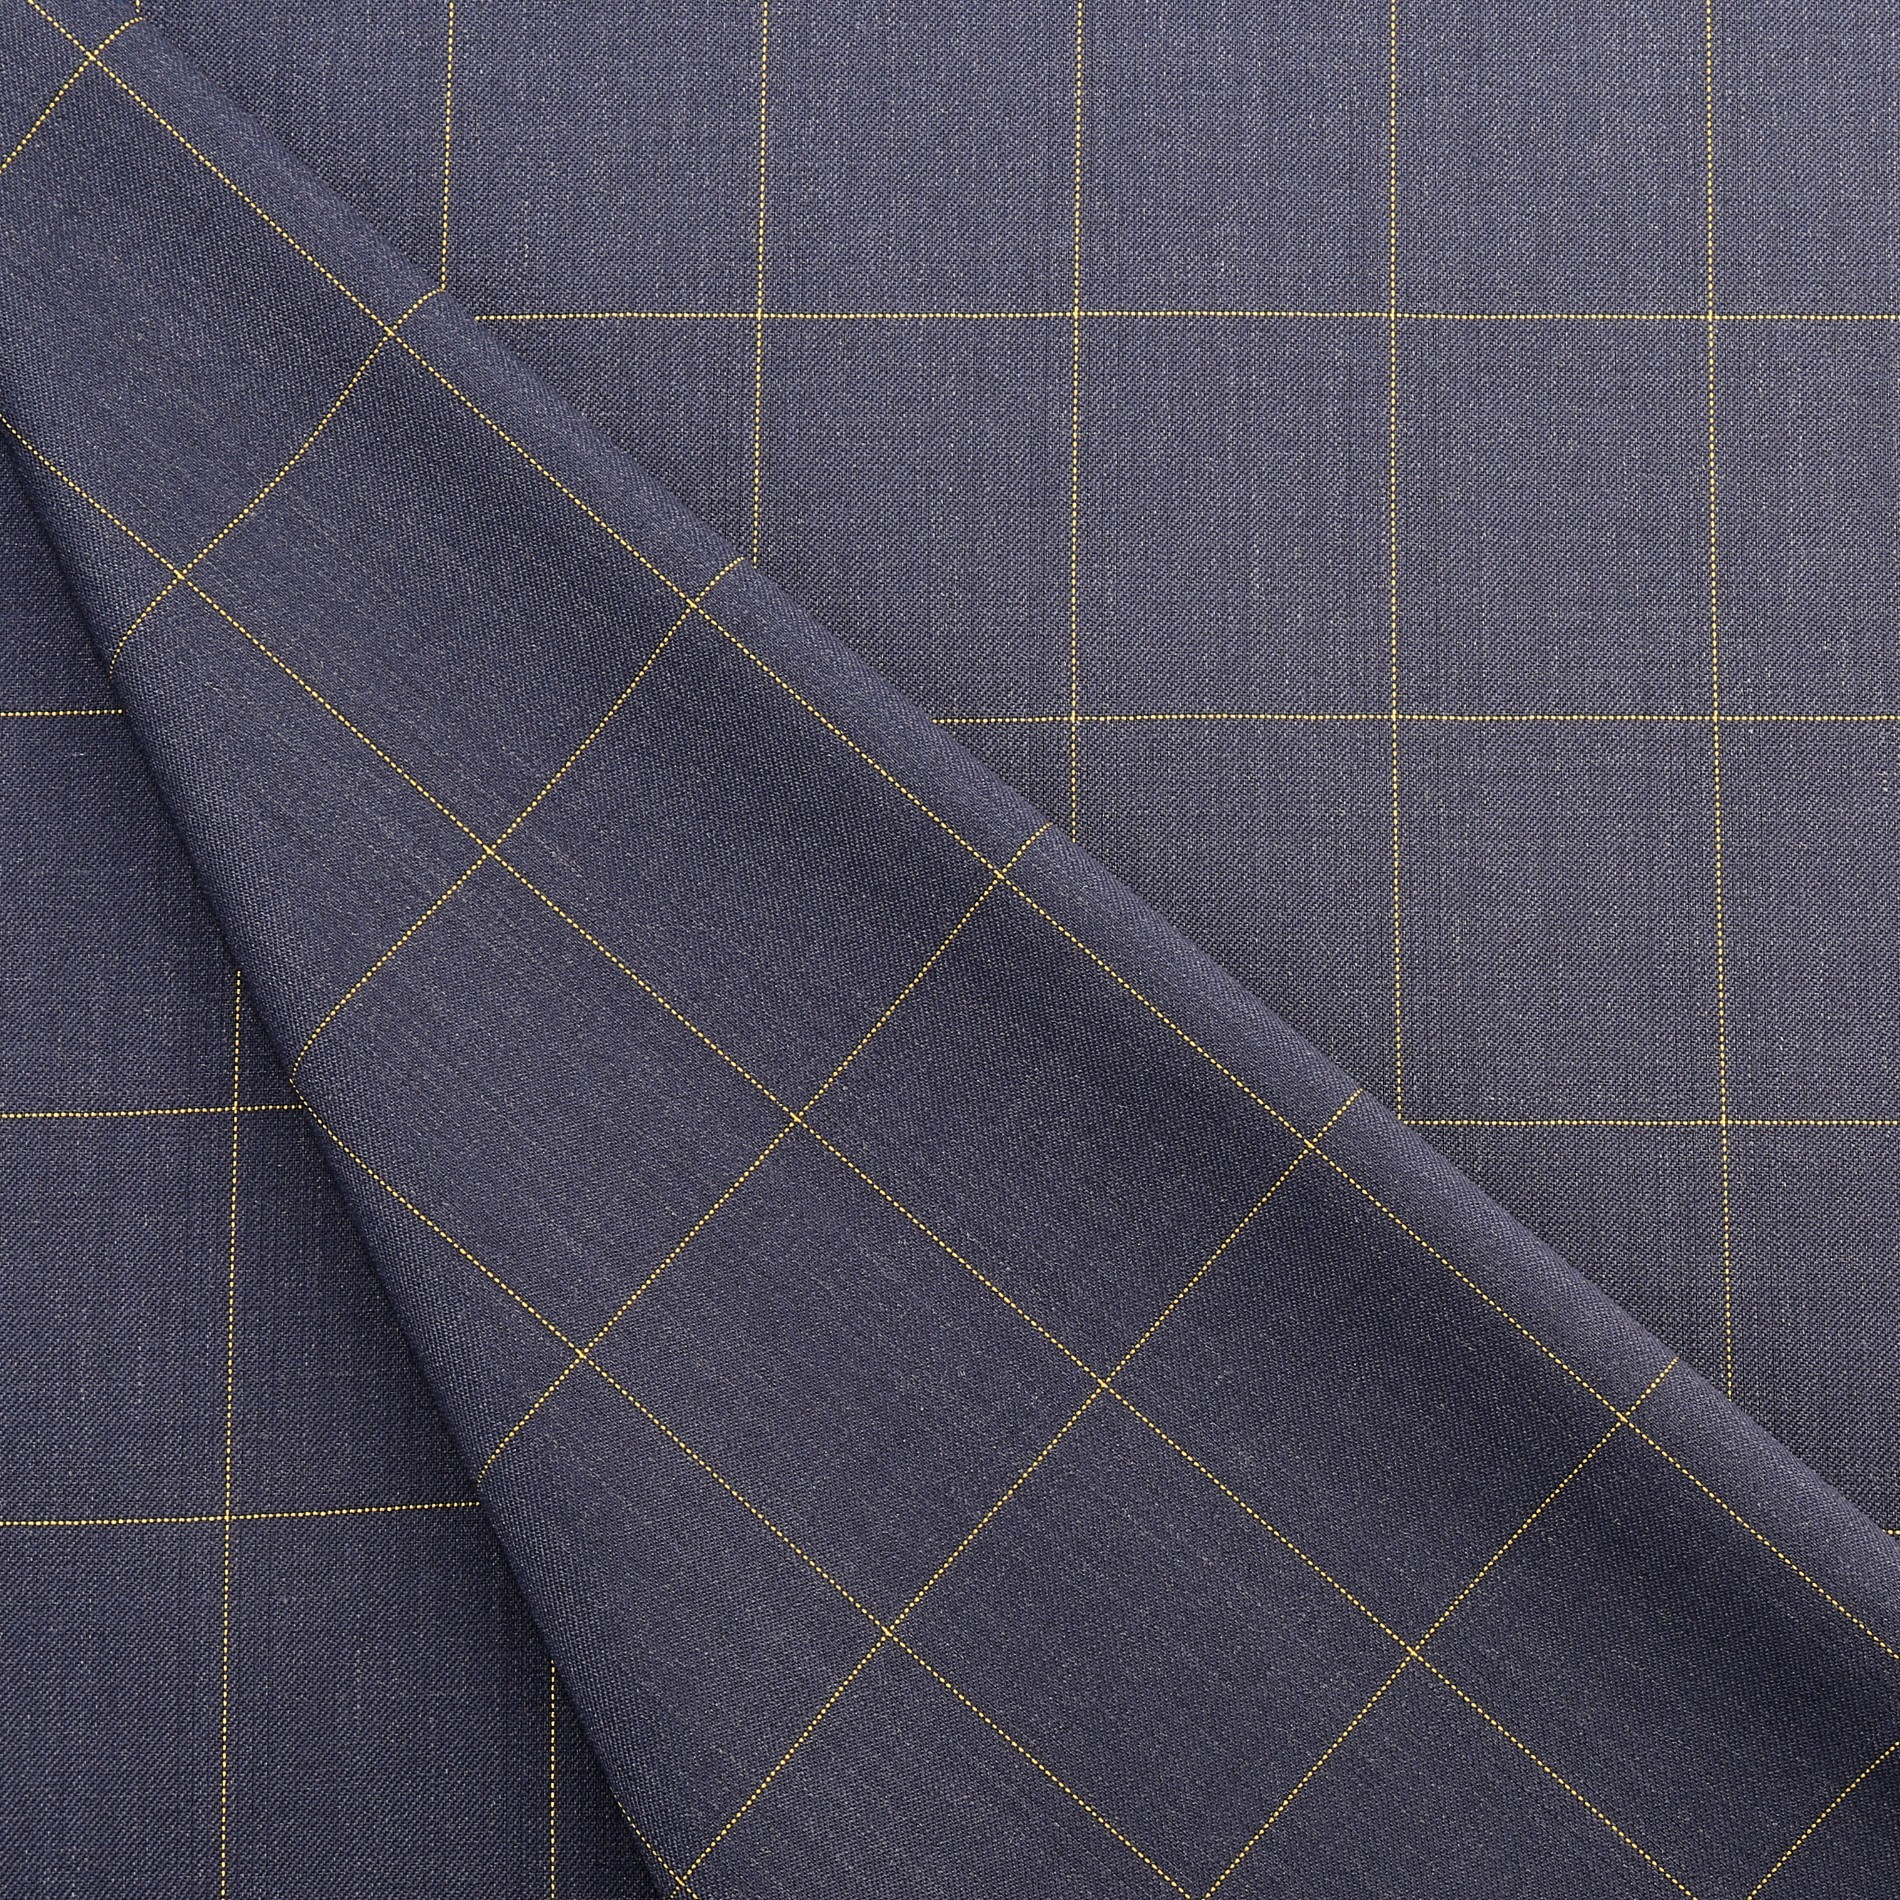 Double Worsted Cotton Yarn Fabric